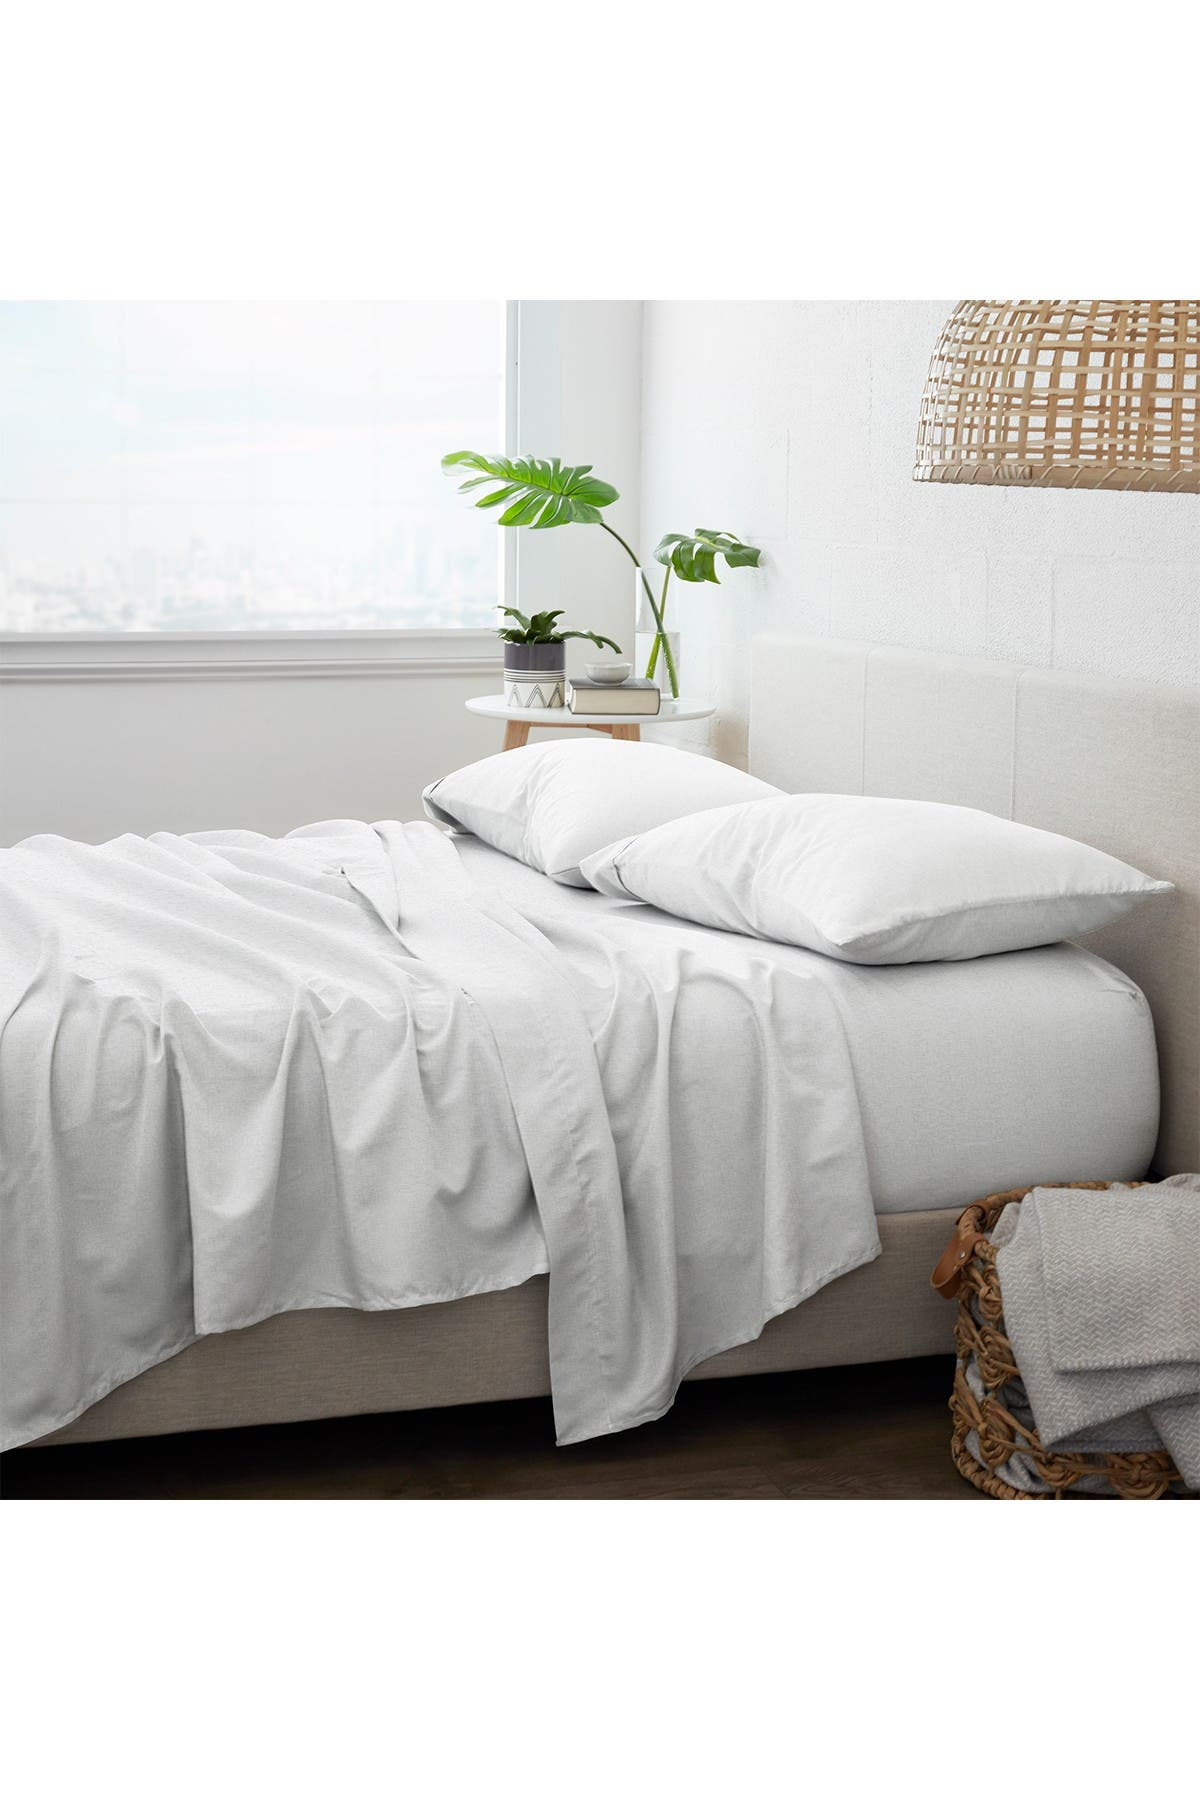 Ienjoy Home Home Collection Premium Ultra Soft Chambray Style Pattern 4 Piece Bed Sheets Set White Twin Nordstrom Rack